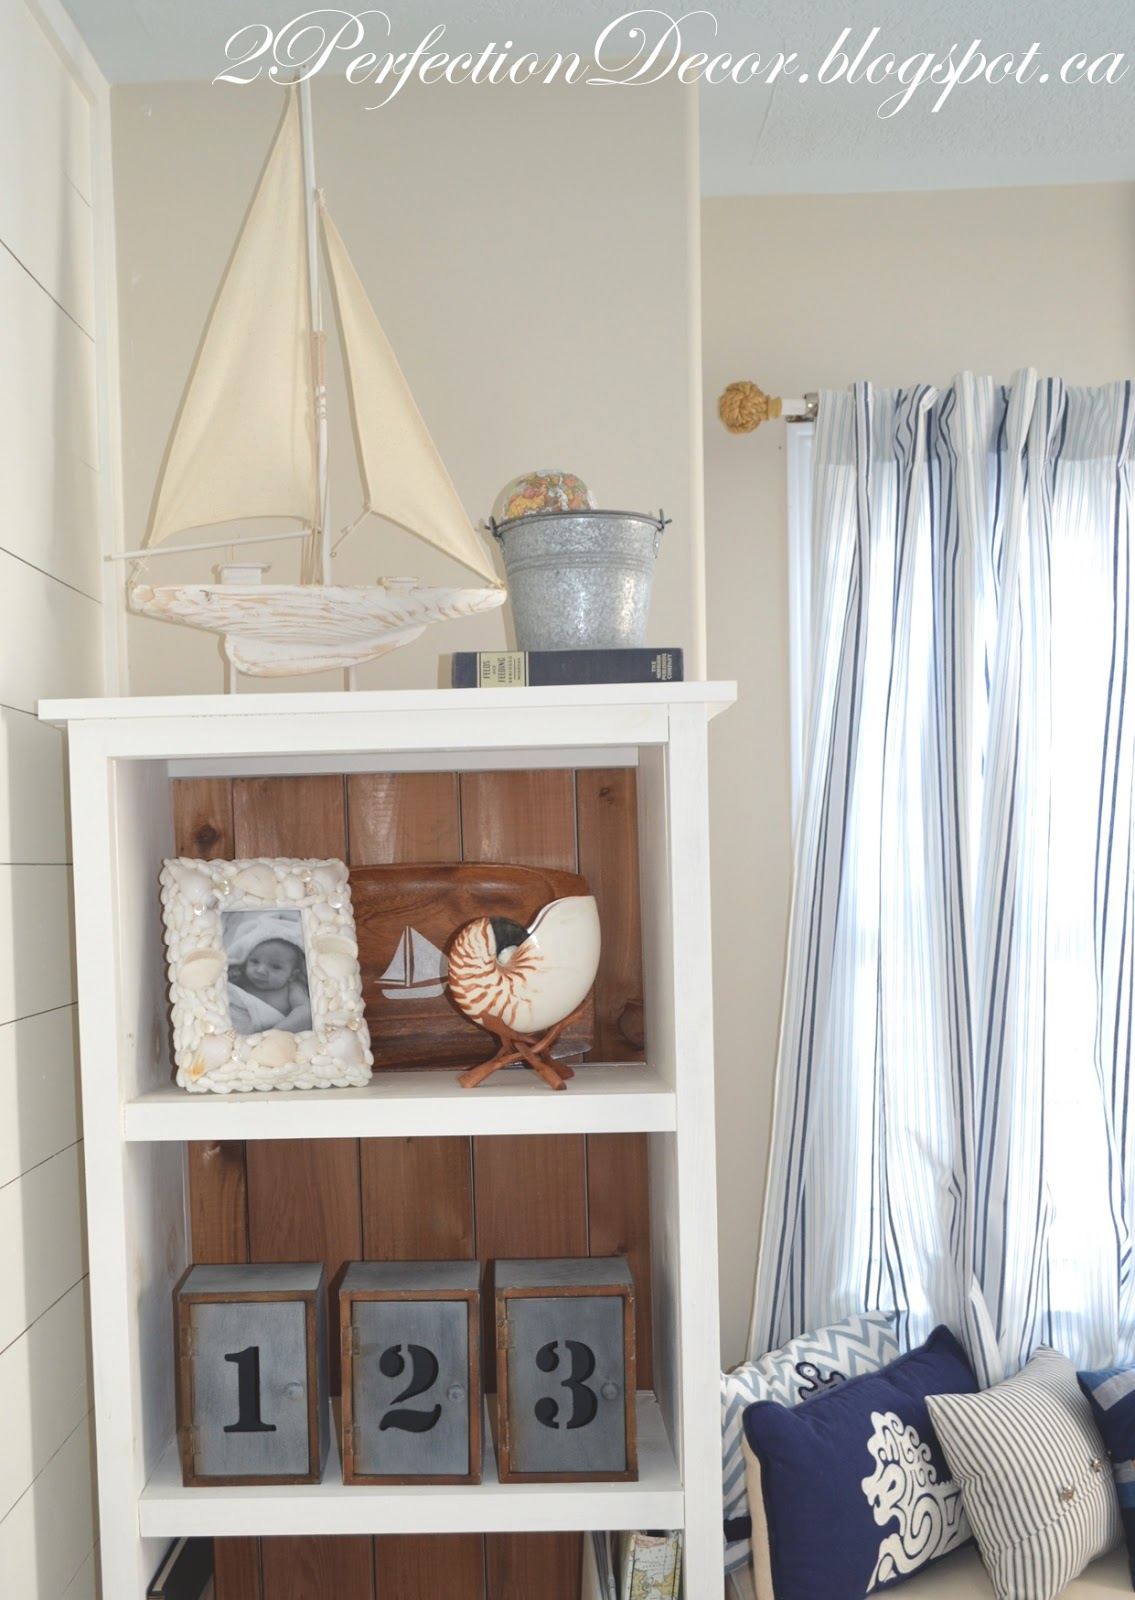 Nautical nursery curtains - I Kept The Bookcase Decor A Mix Of Newer Items With Vintage Finds I Added Touches Of Galvanized Metal Which Tied To The Large Galvanized Metal Wall